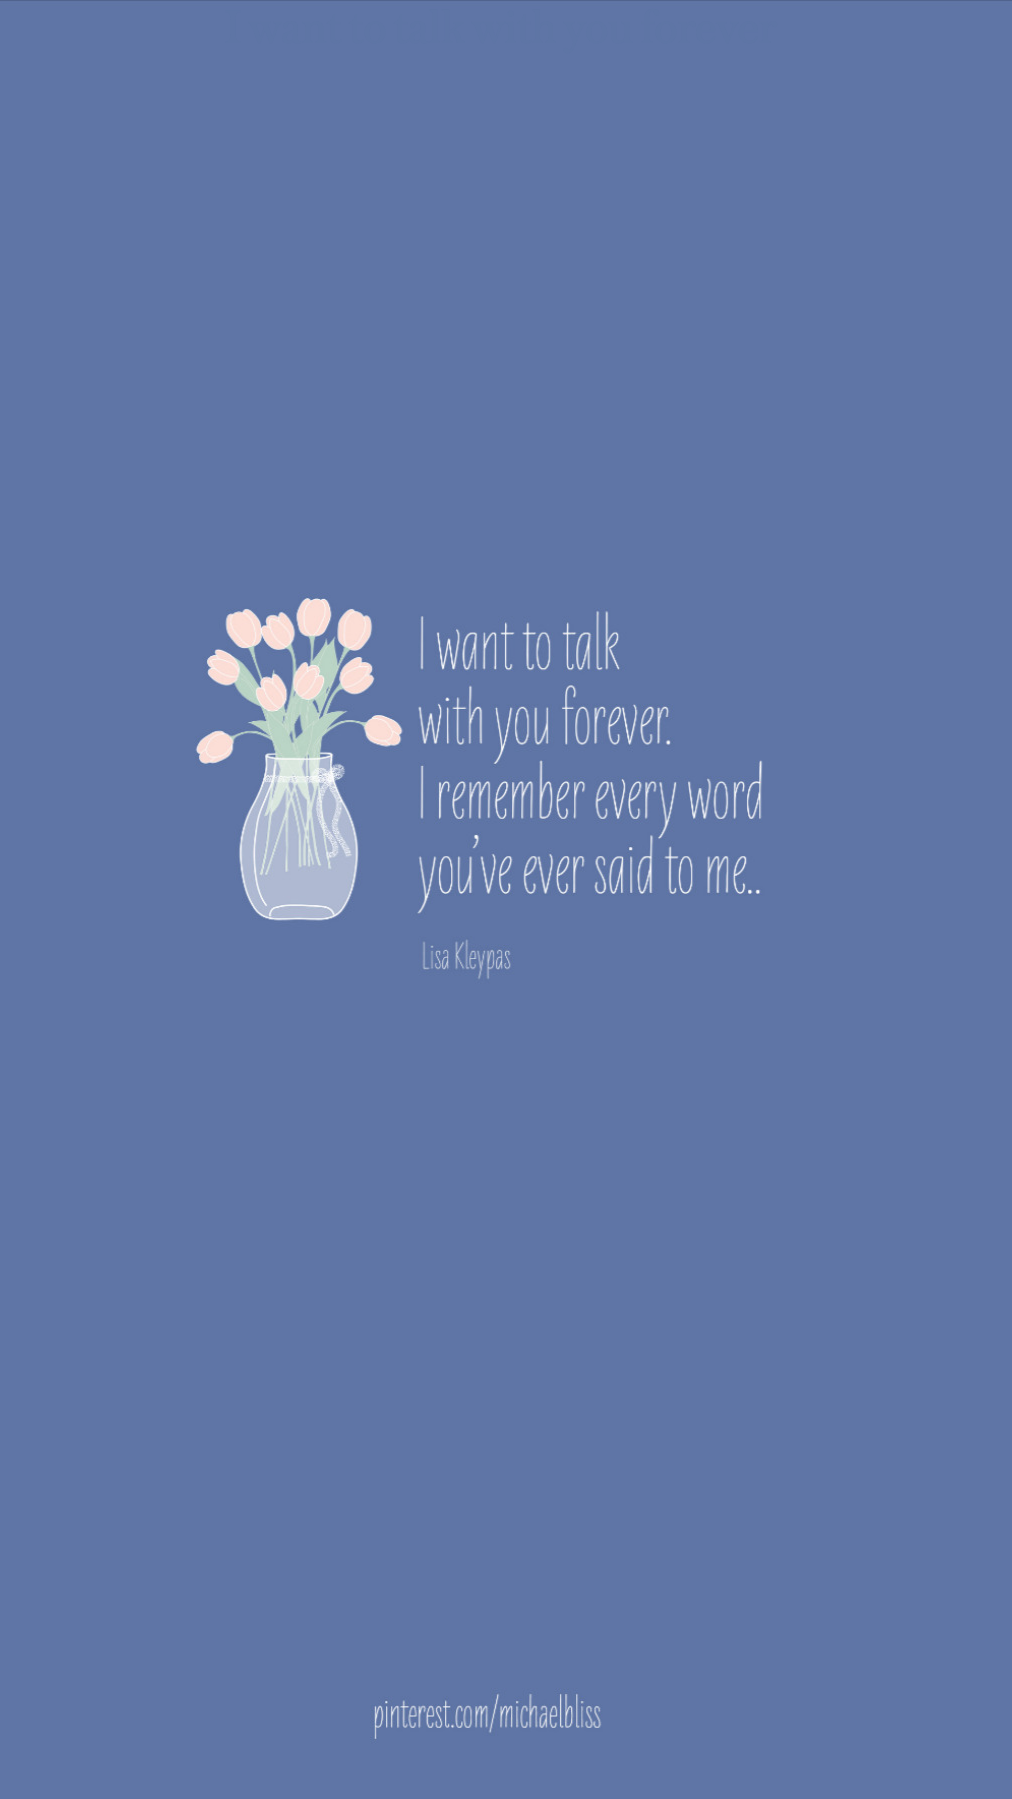 I want to talk with you forever